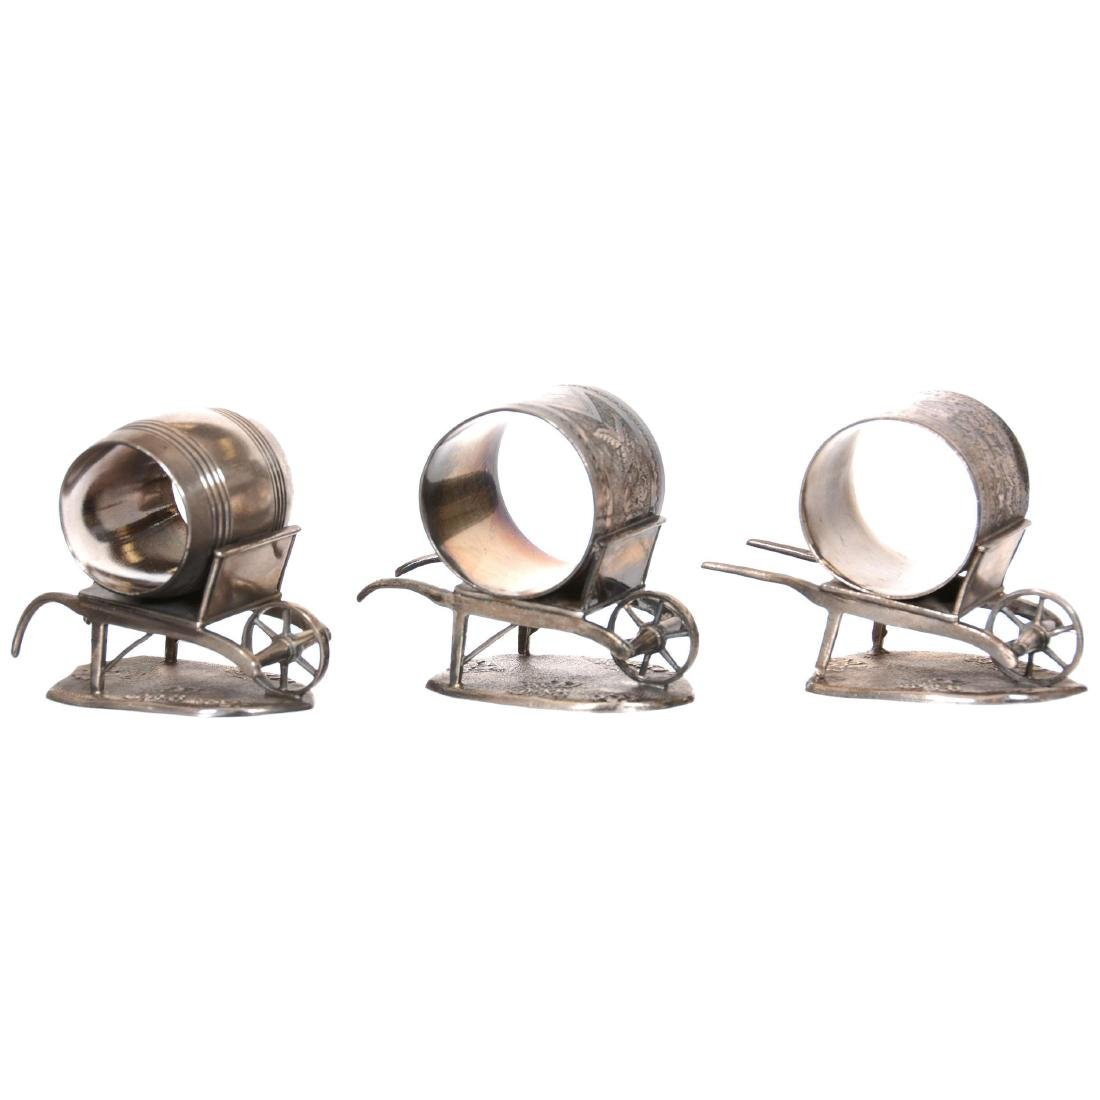 (3) Silverplate Victorian Napkin Rings